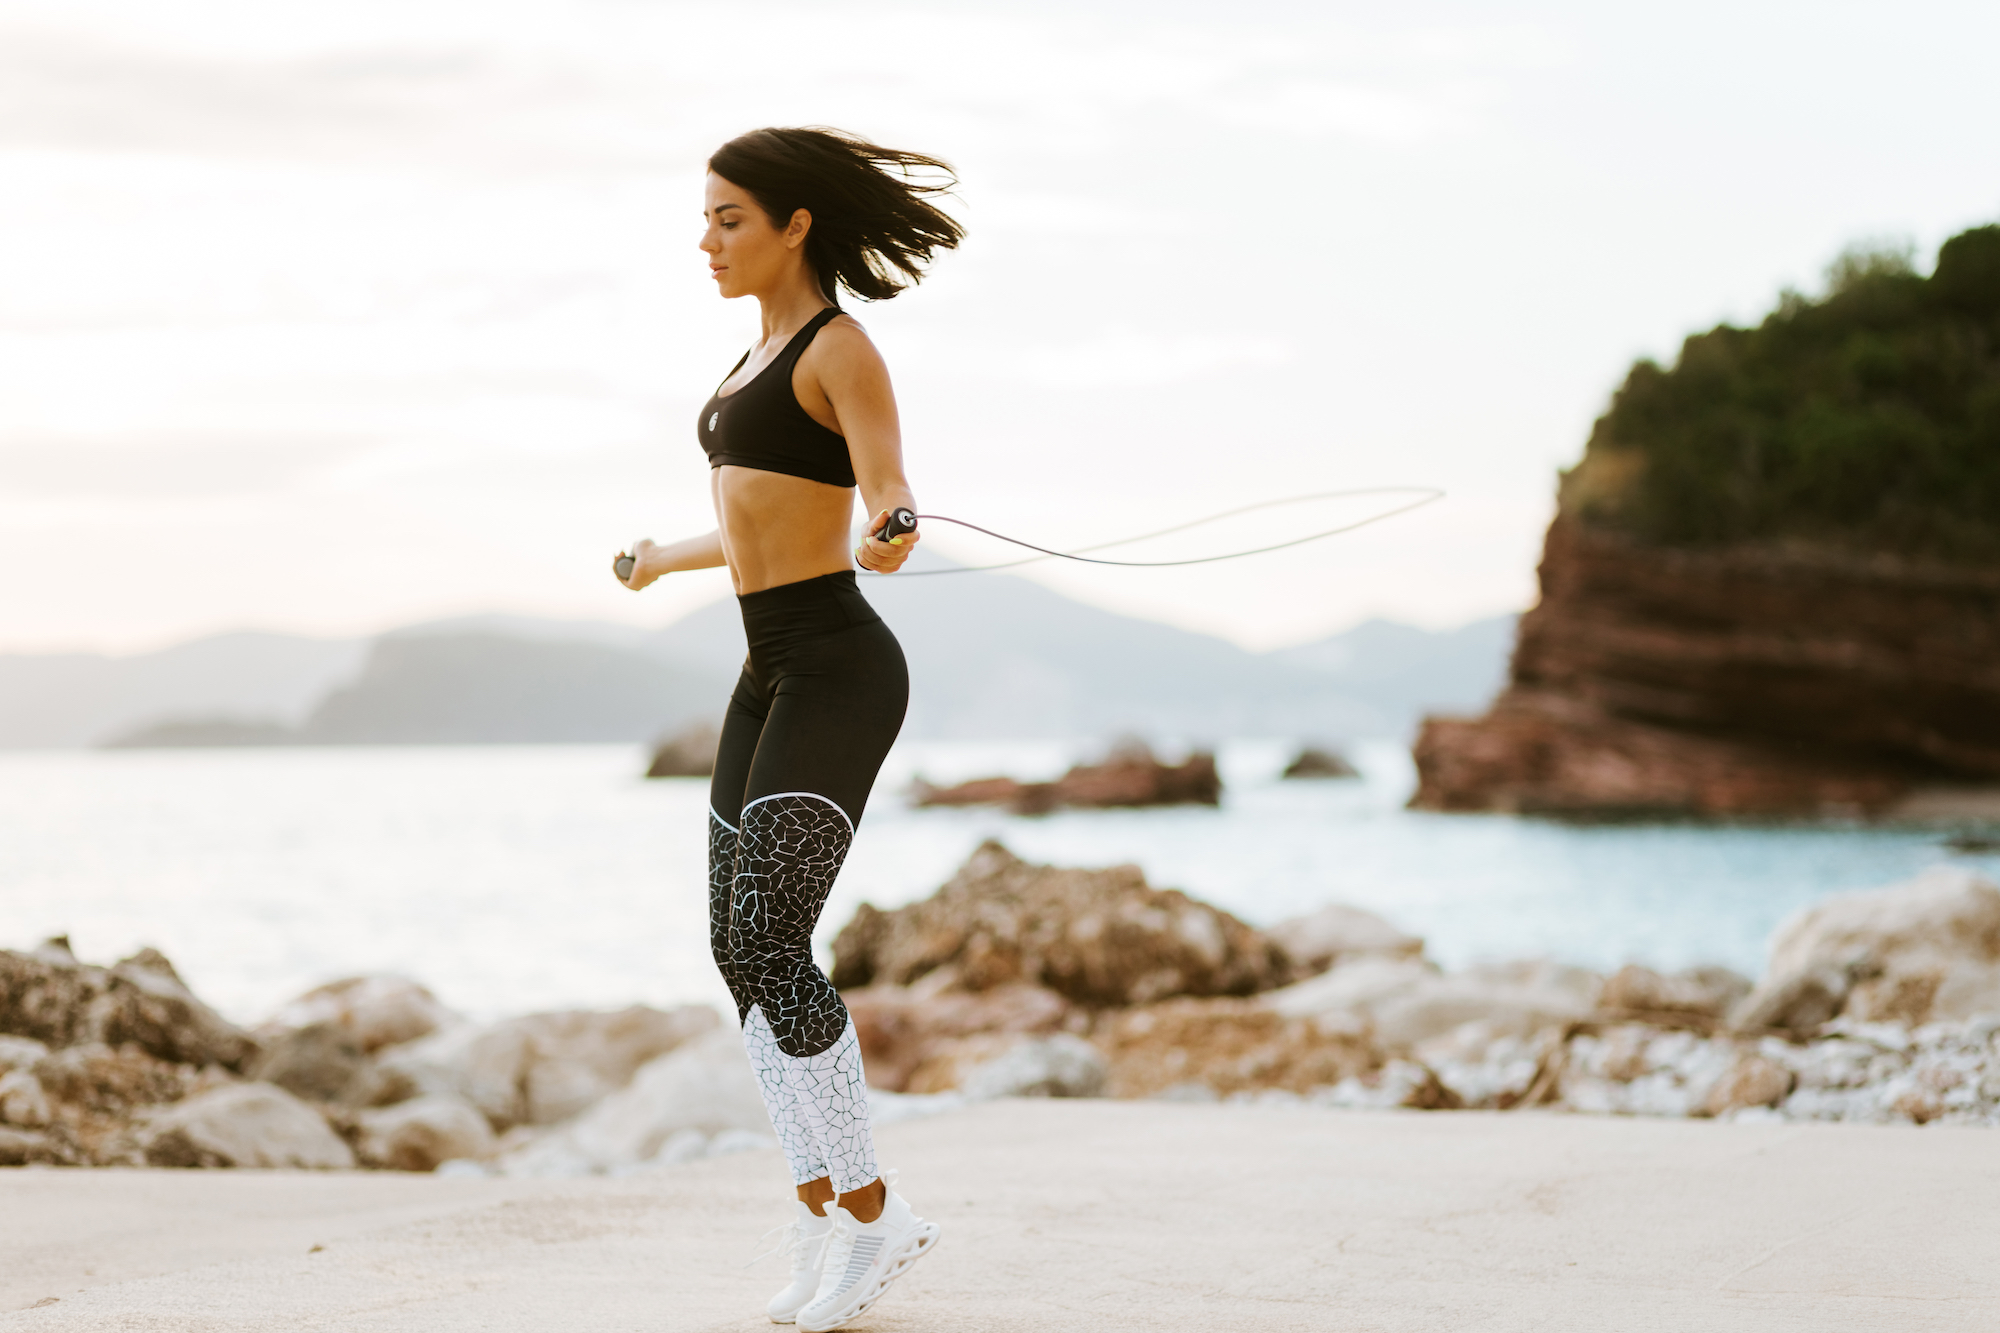 sporty woman skipping rope